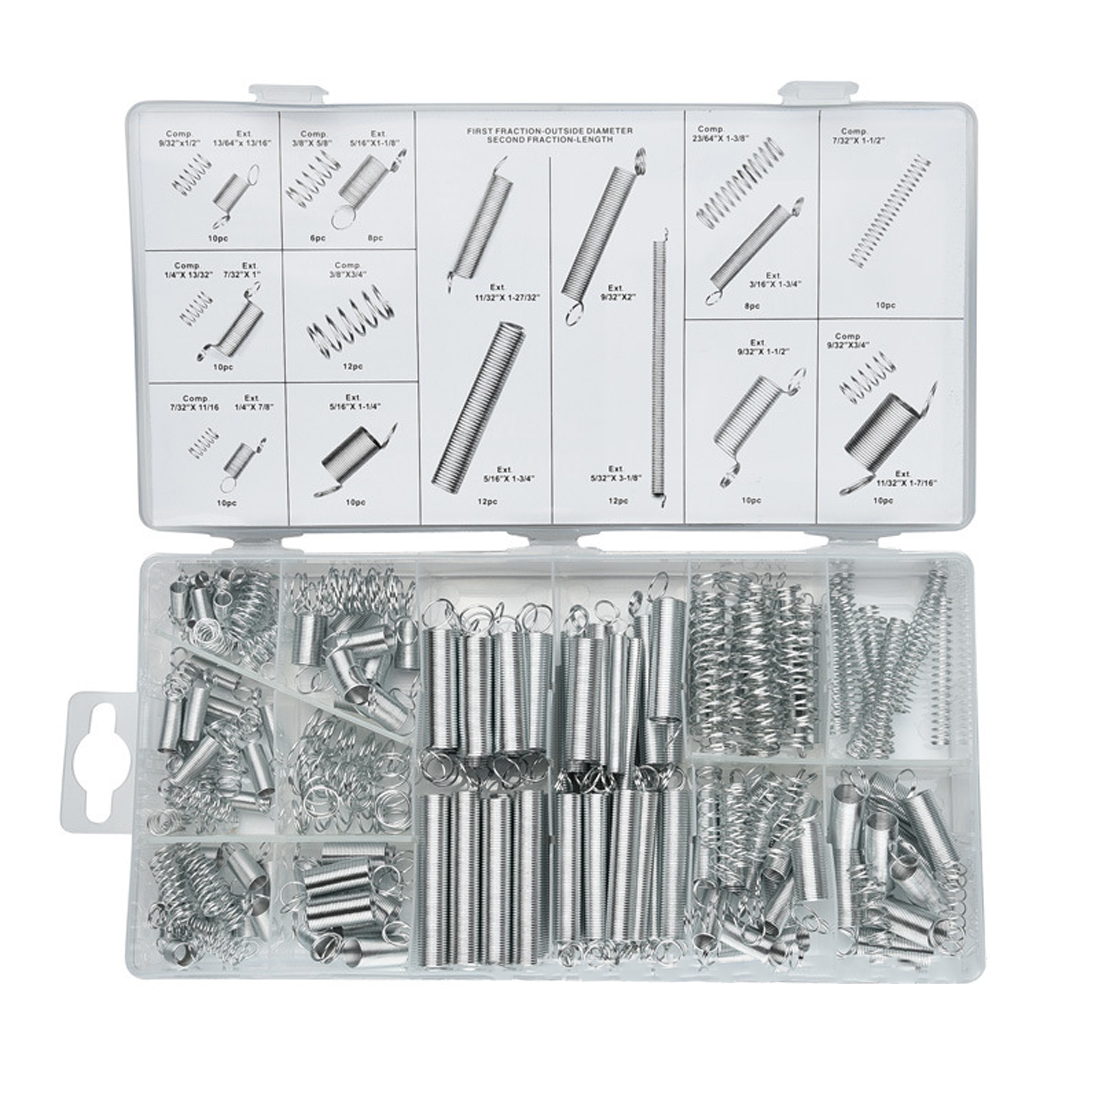 200PCS/set Hardware Tension Spring Compression Spring Set in Box 20 Size Springs Assortment image